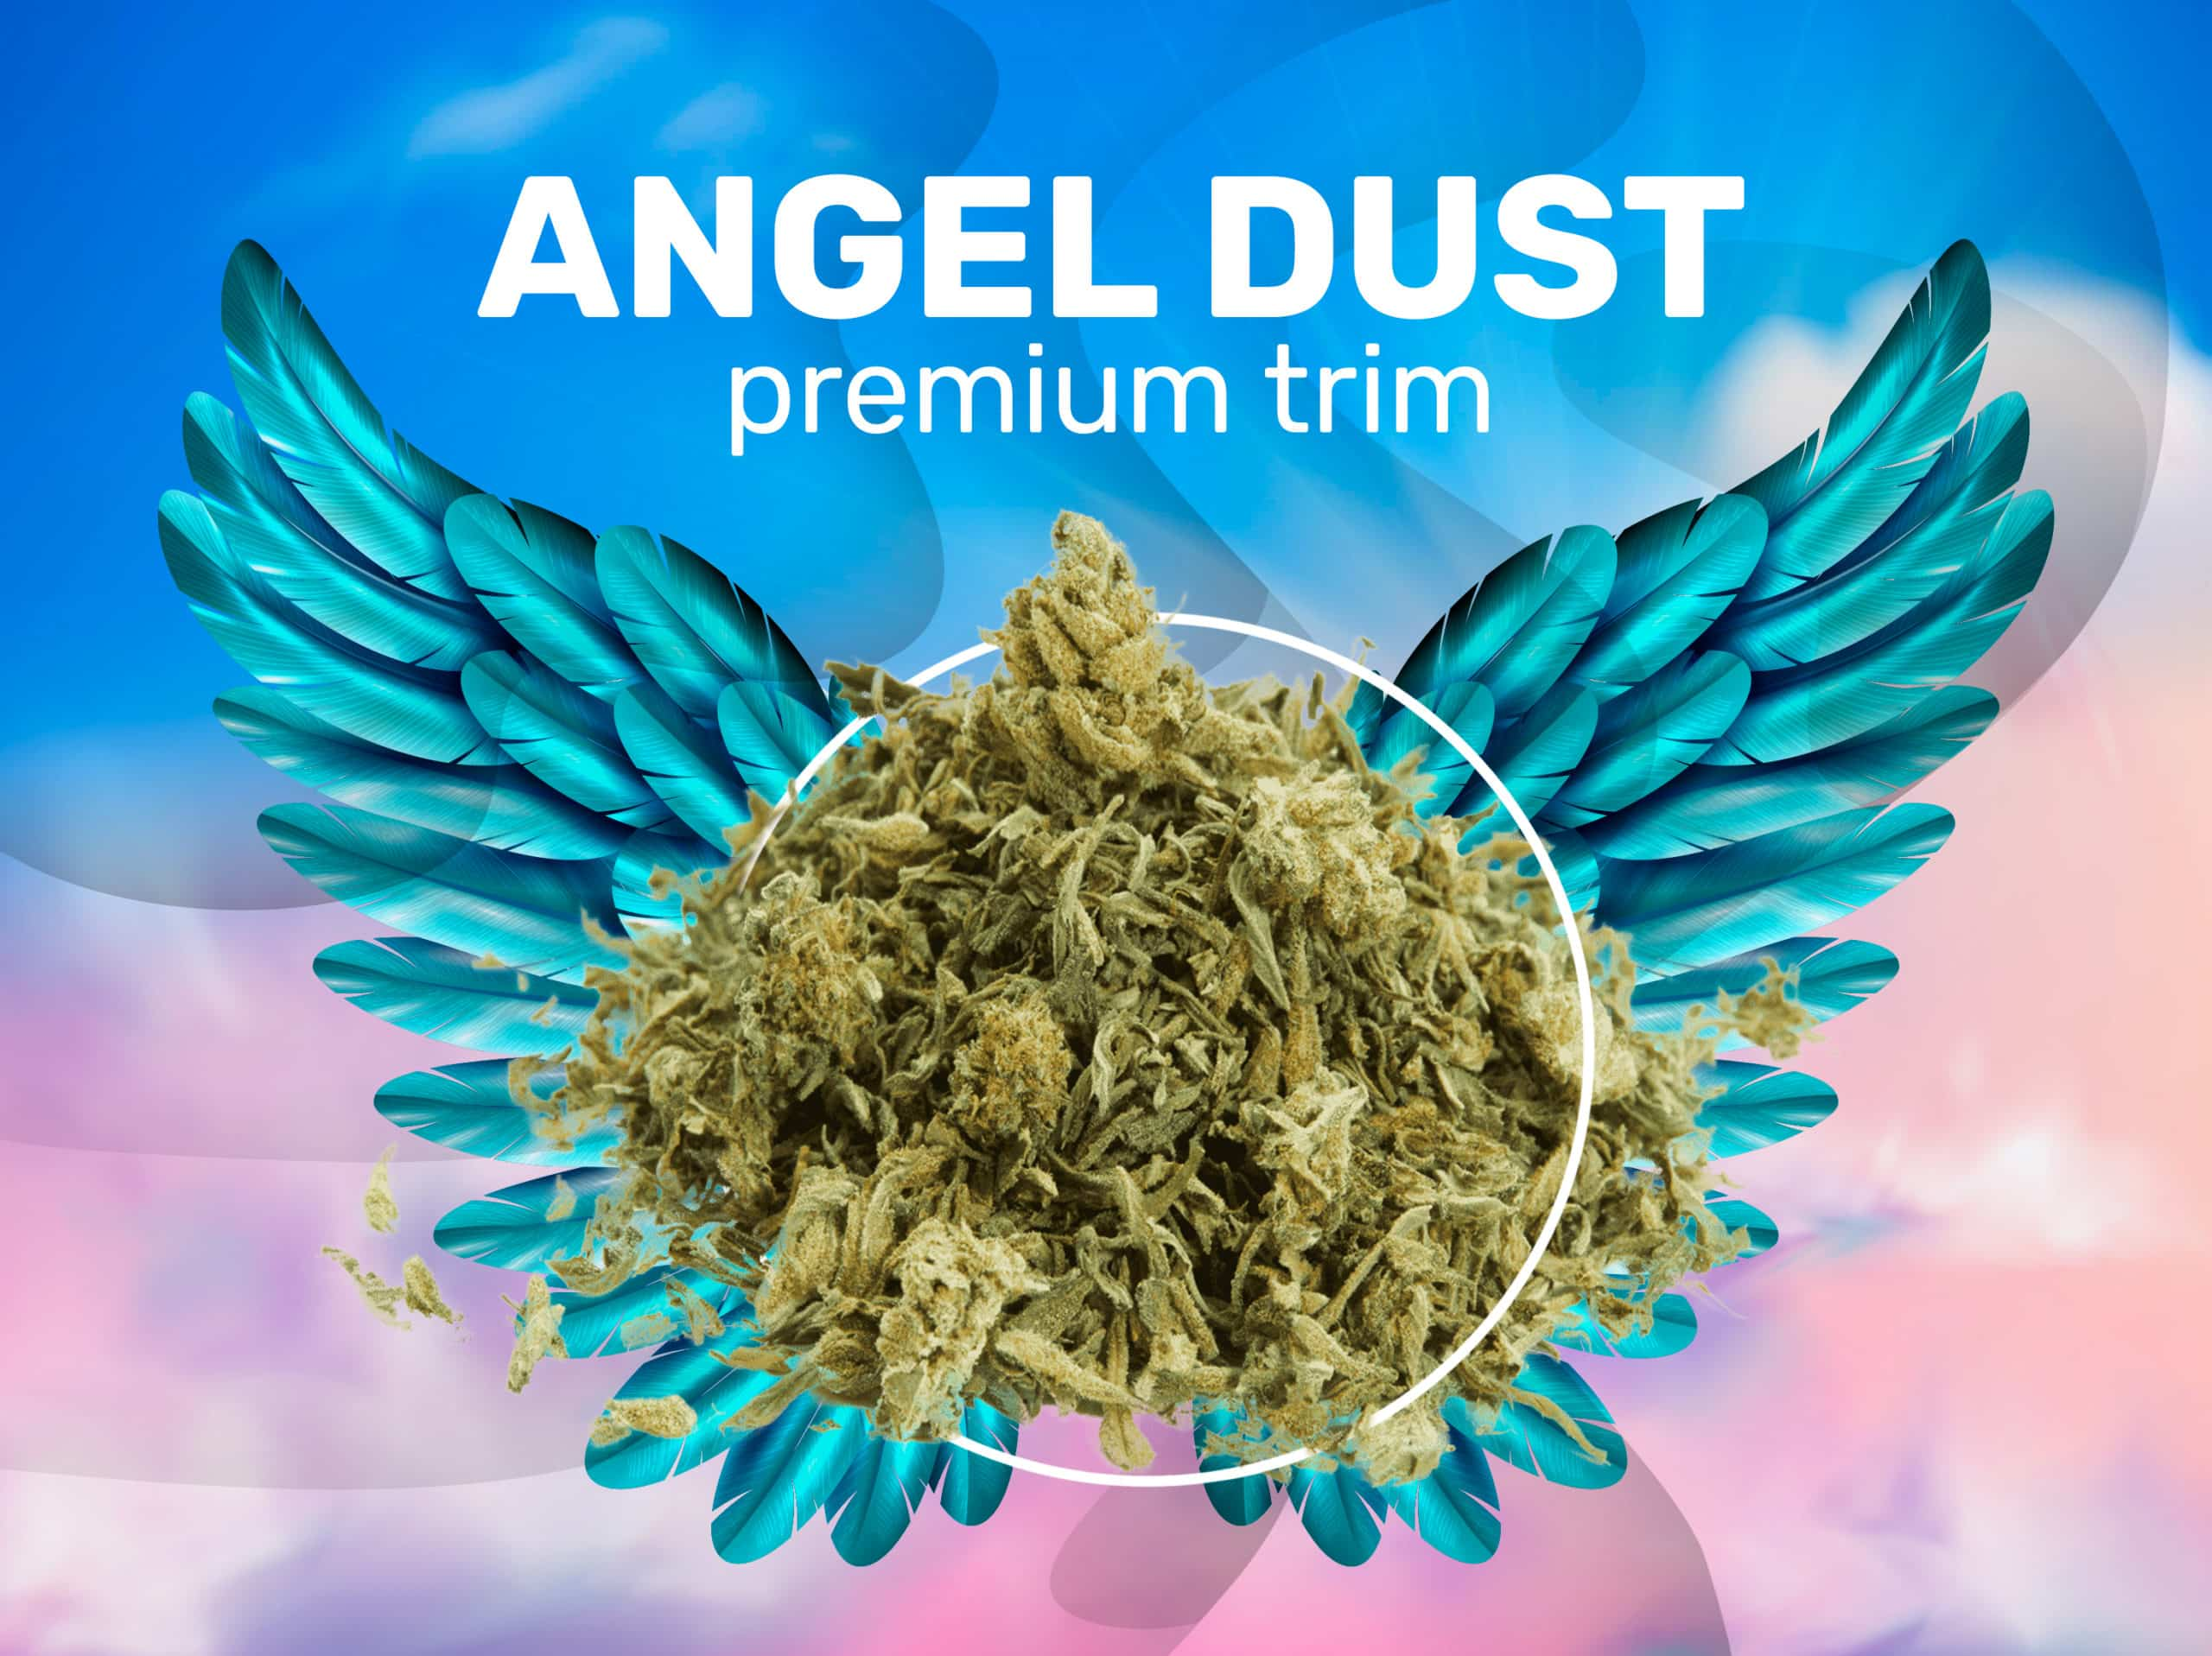 Angel Dust premium trim CBD